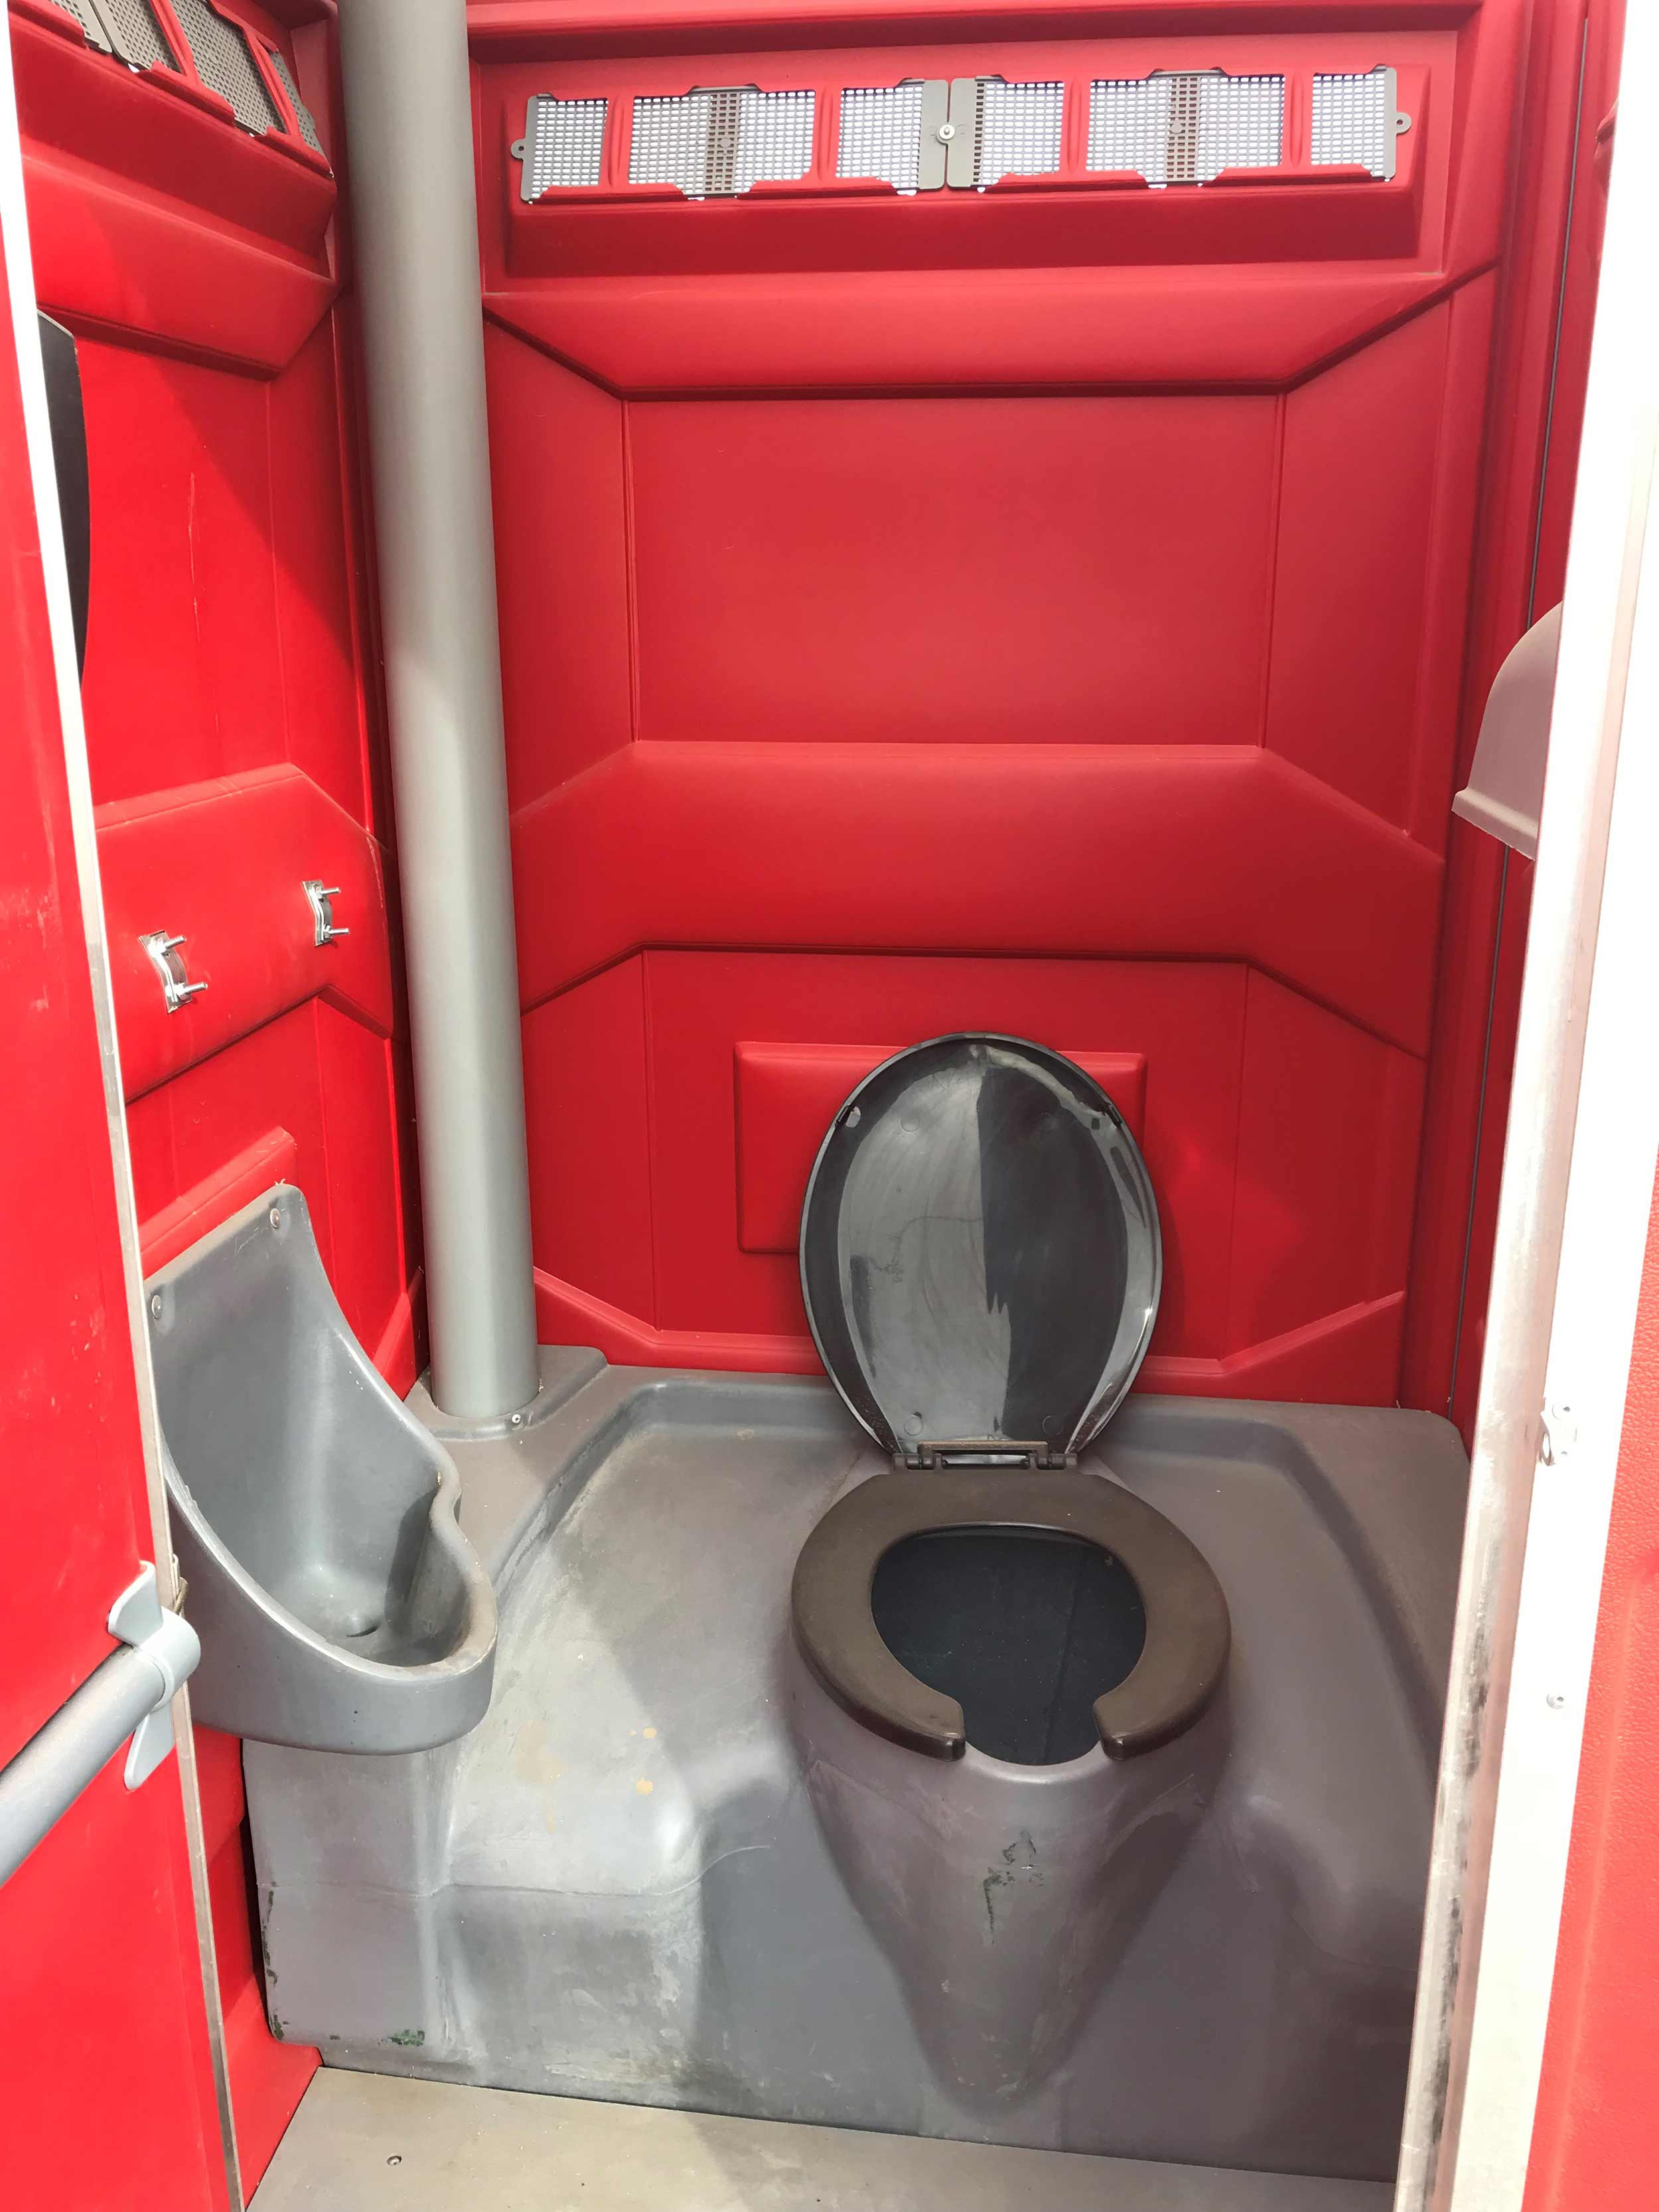 Inside-Standard-Portable-Toilet-from-Steelhead-Ventures